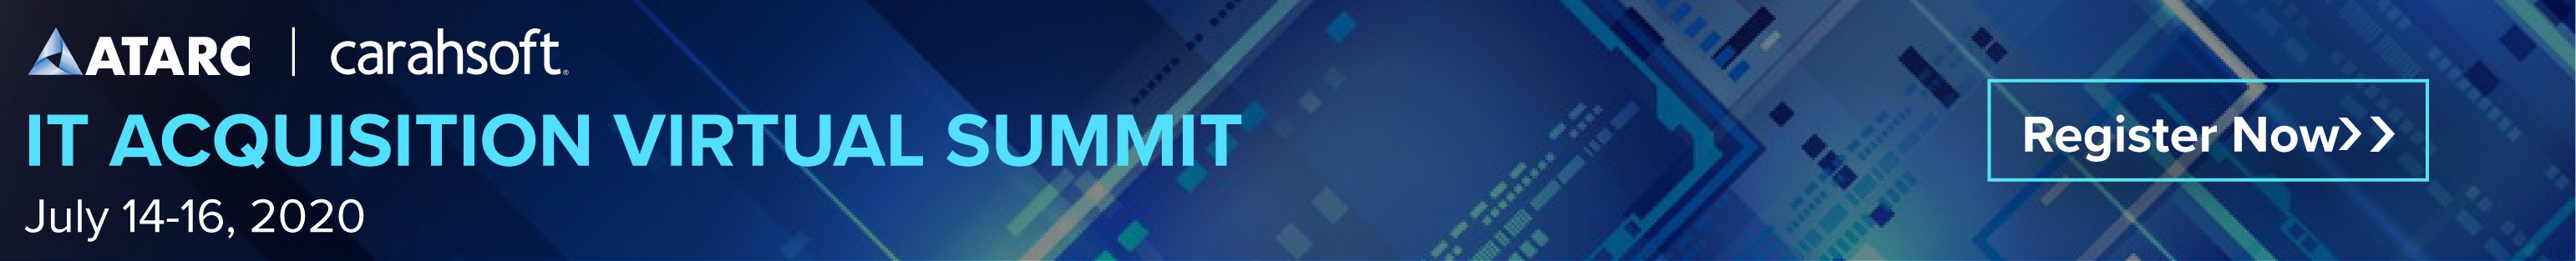 Register for the IT Acquisition Virtual Summit on July 14 to 16.